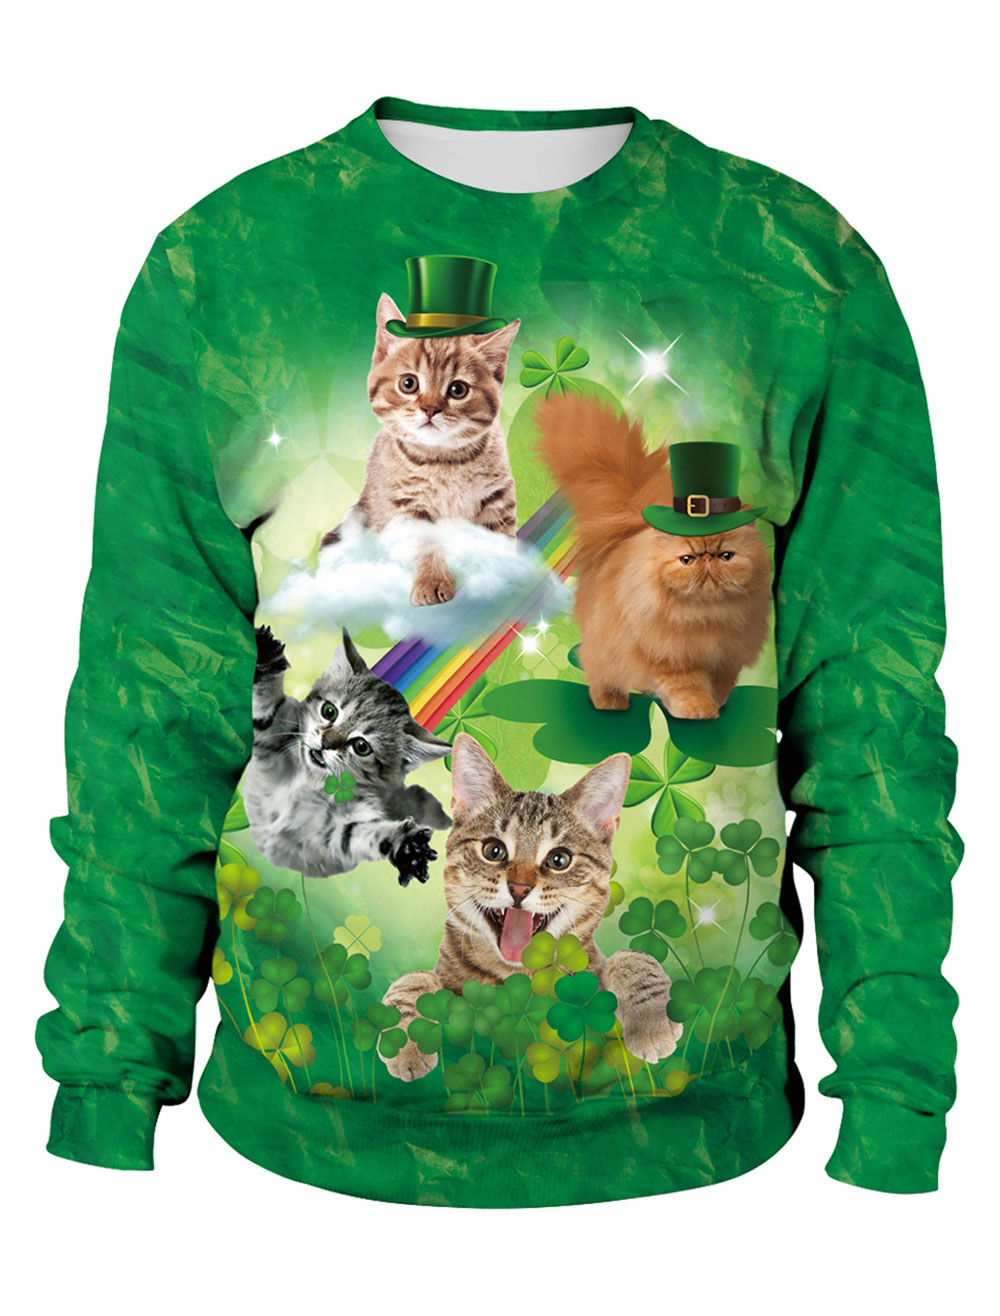 6b4414c0d2e2 St Patricks Day Green Sweatshirt 3D Printed Cat Dog Clover Pullovers ...